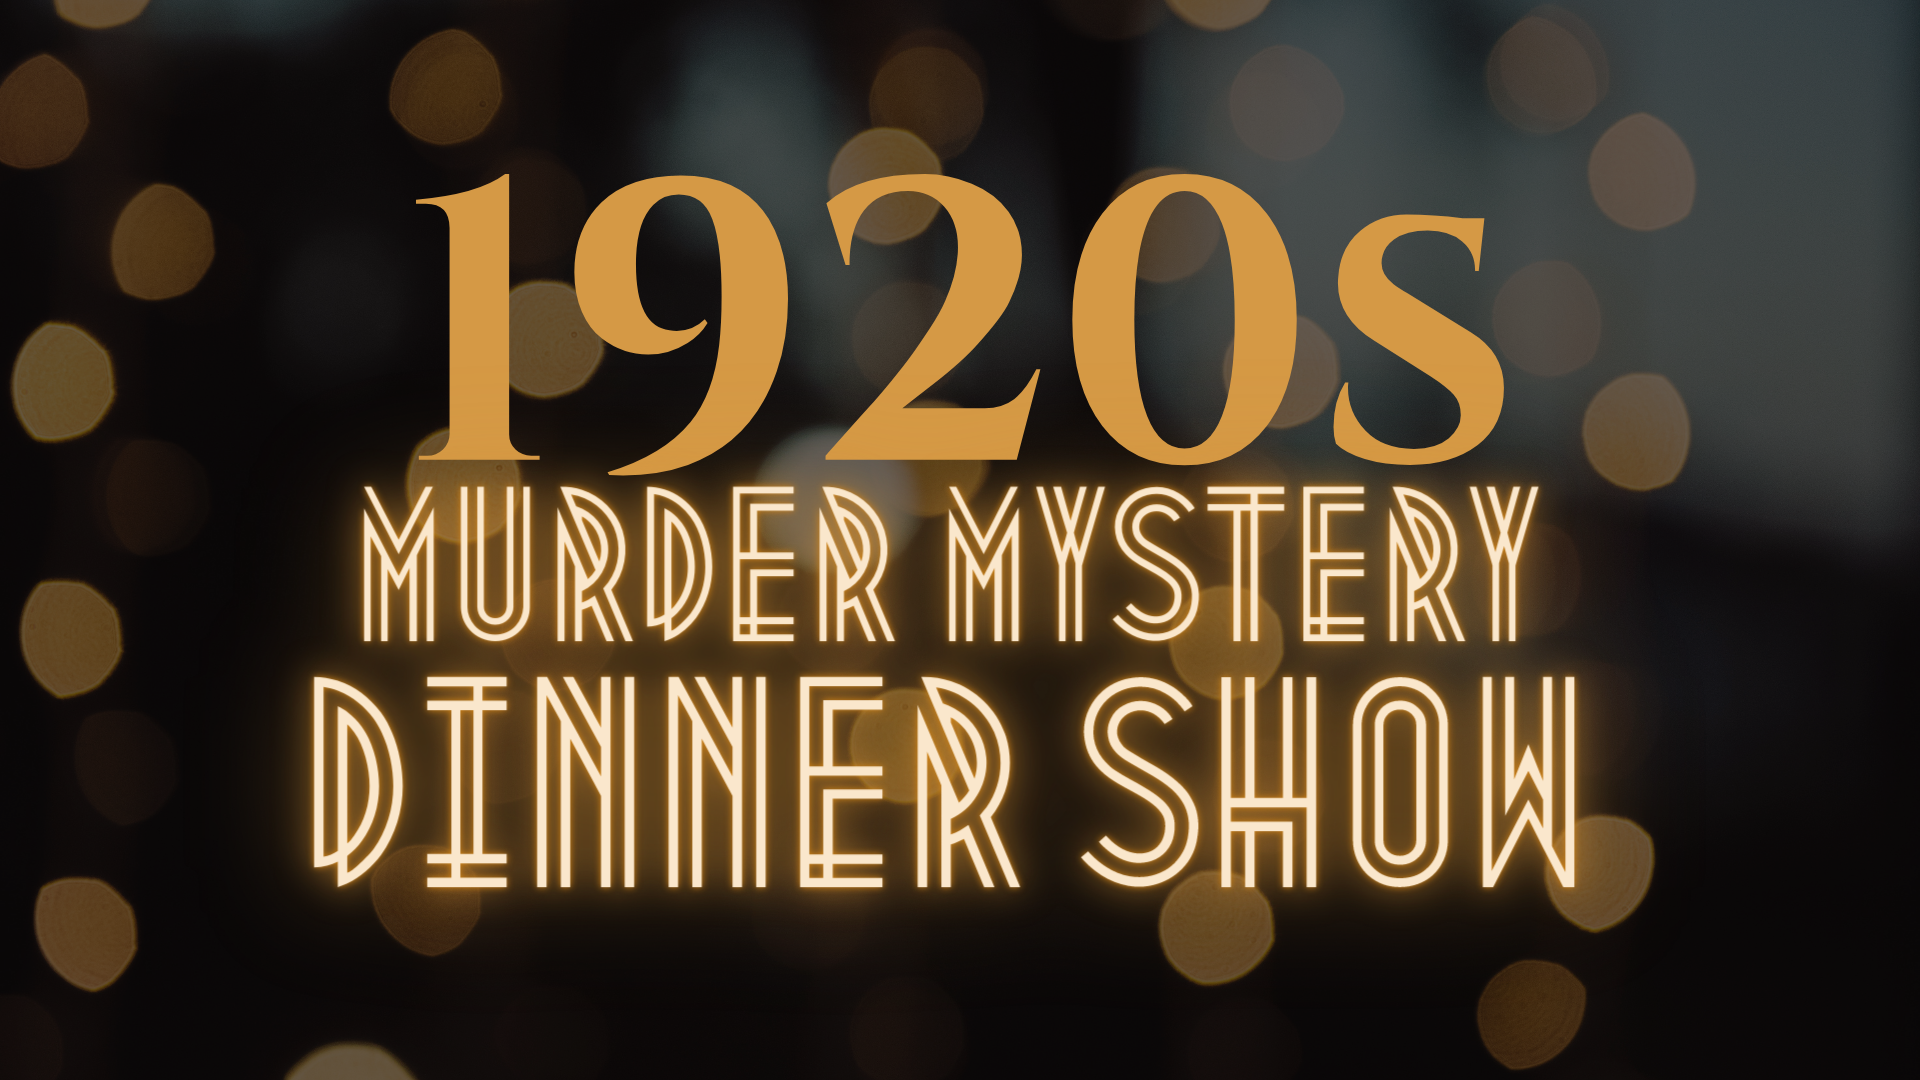 1920s Murder Mystery Dinner Show Presented by ICMTheatre